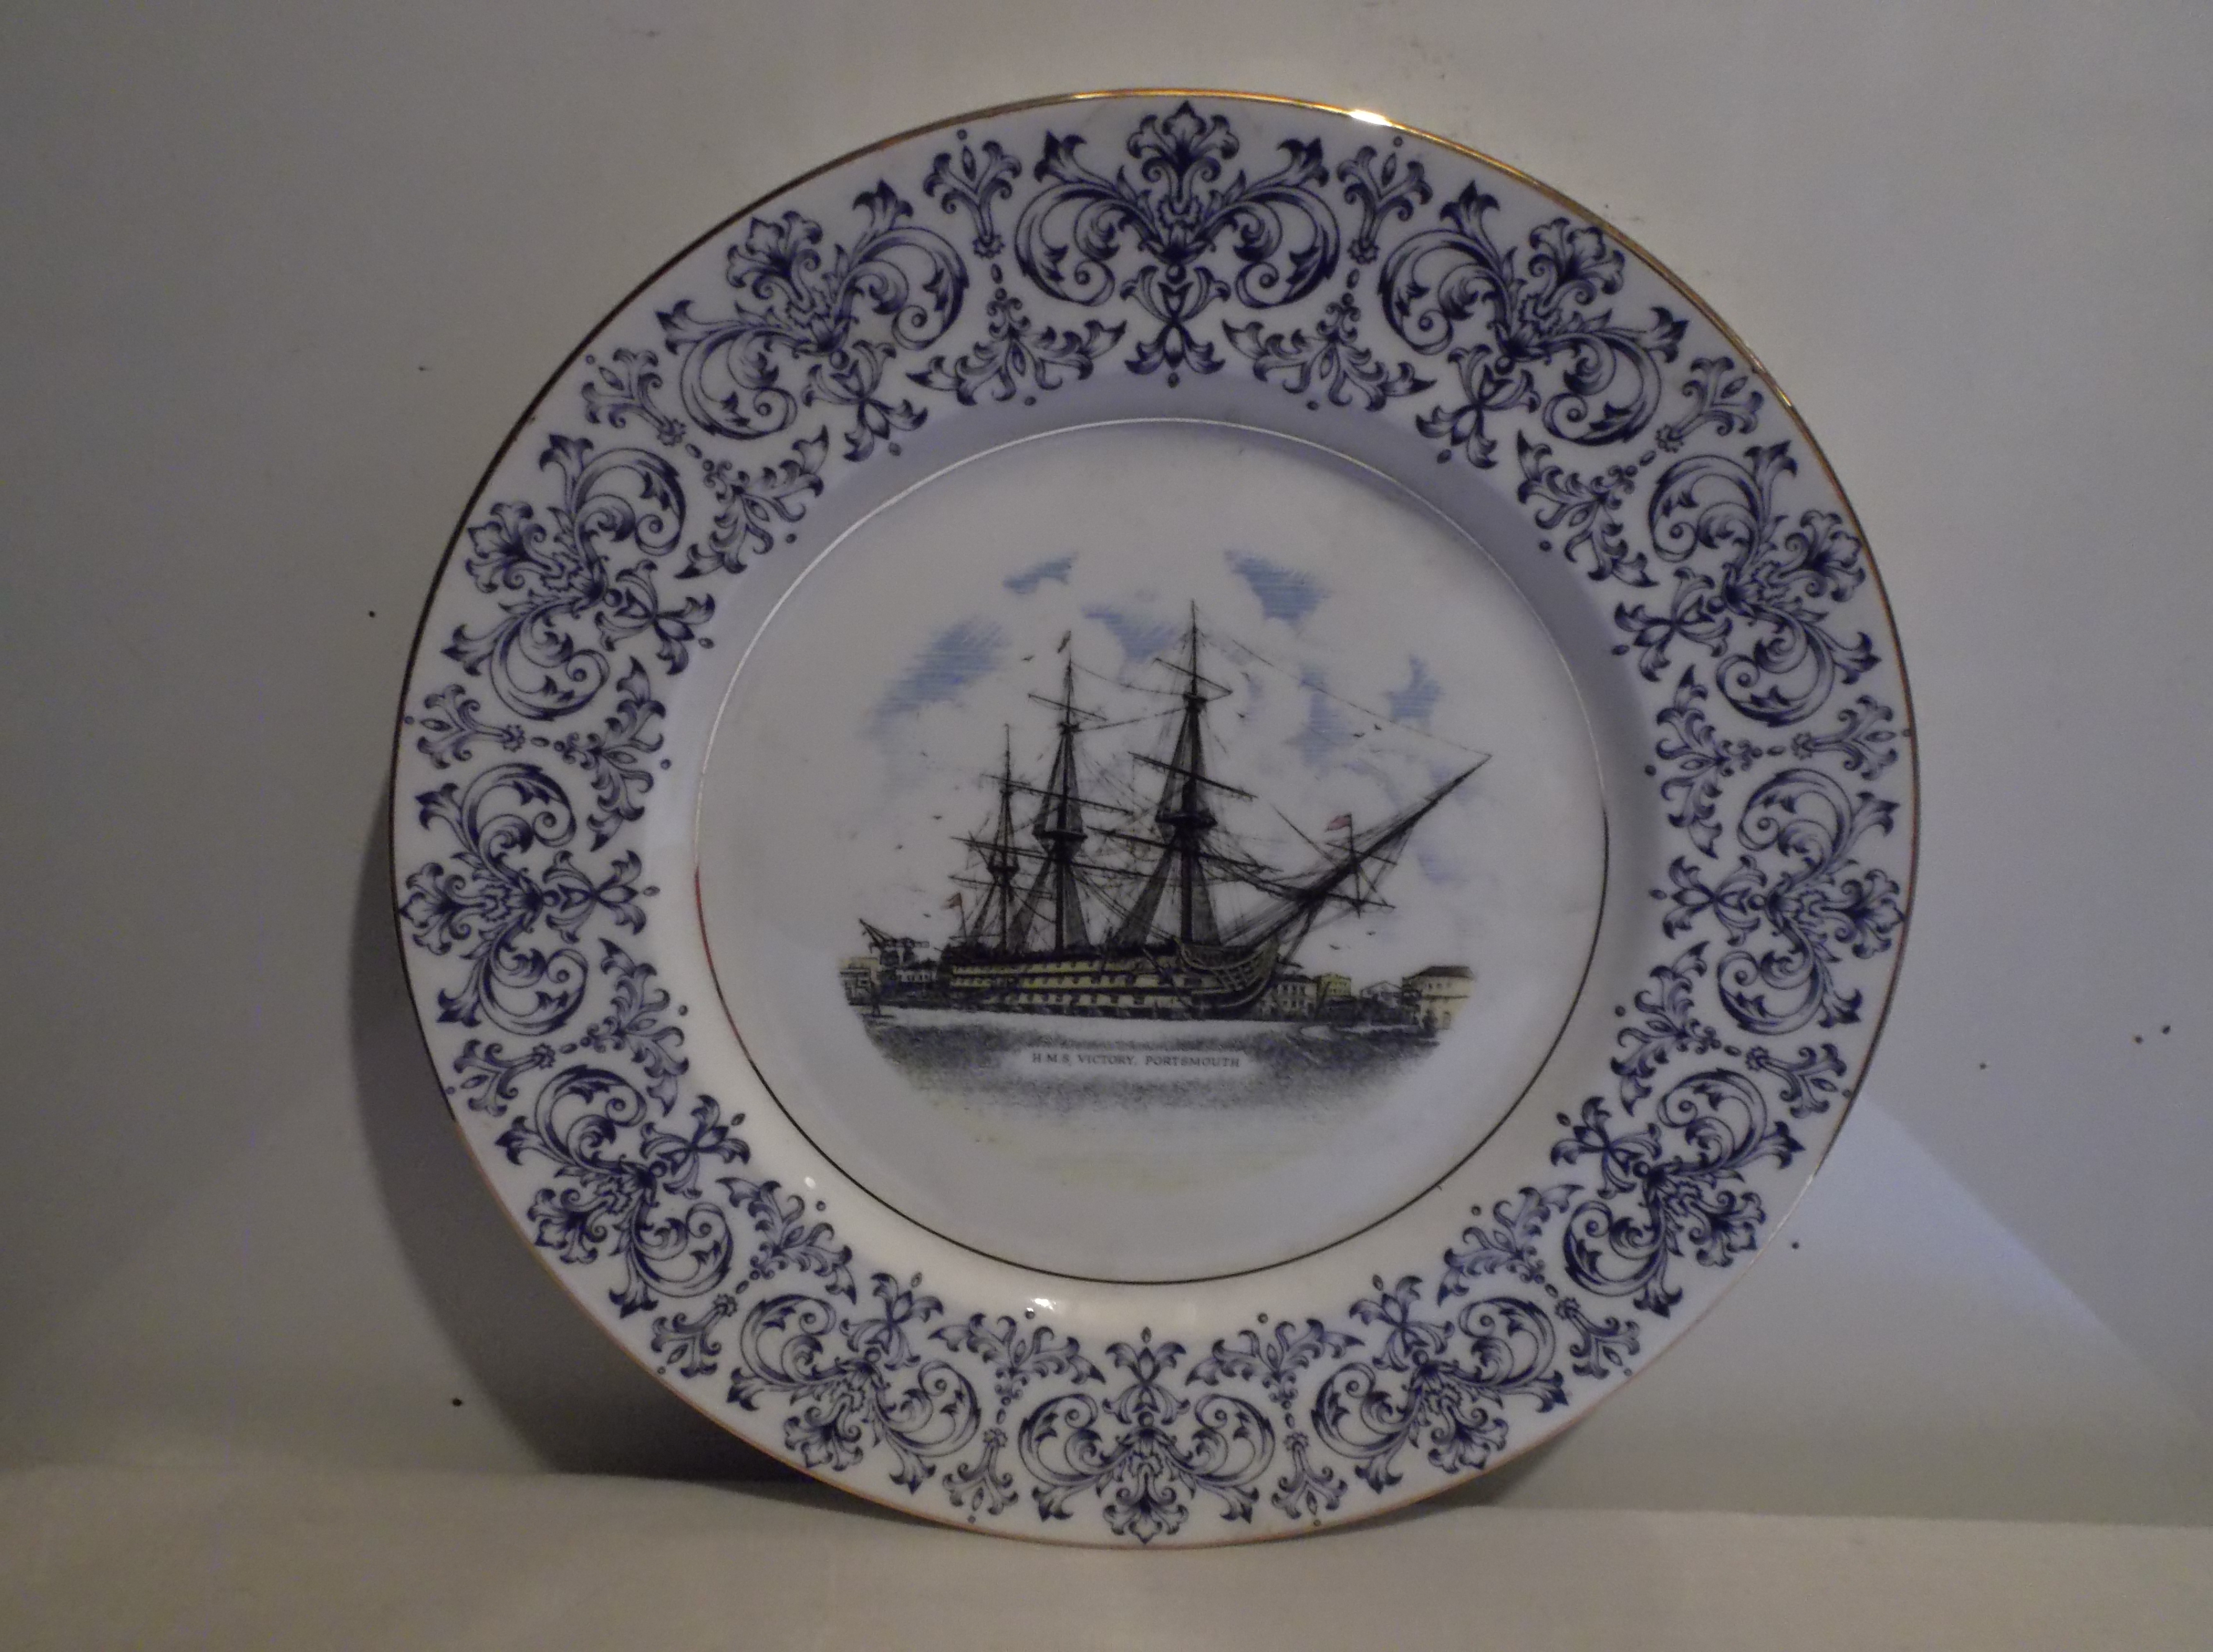 SOUVENIR PLATE FROM THE FAMOUS MOORED VESSEL THE HMS VICTORY